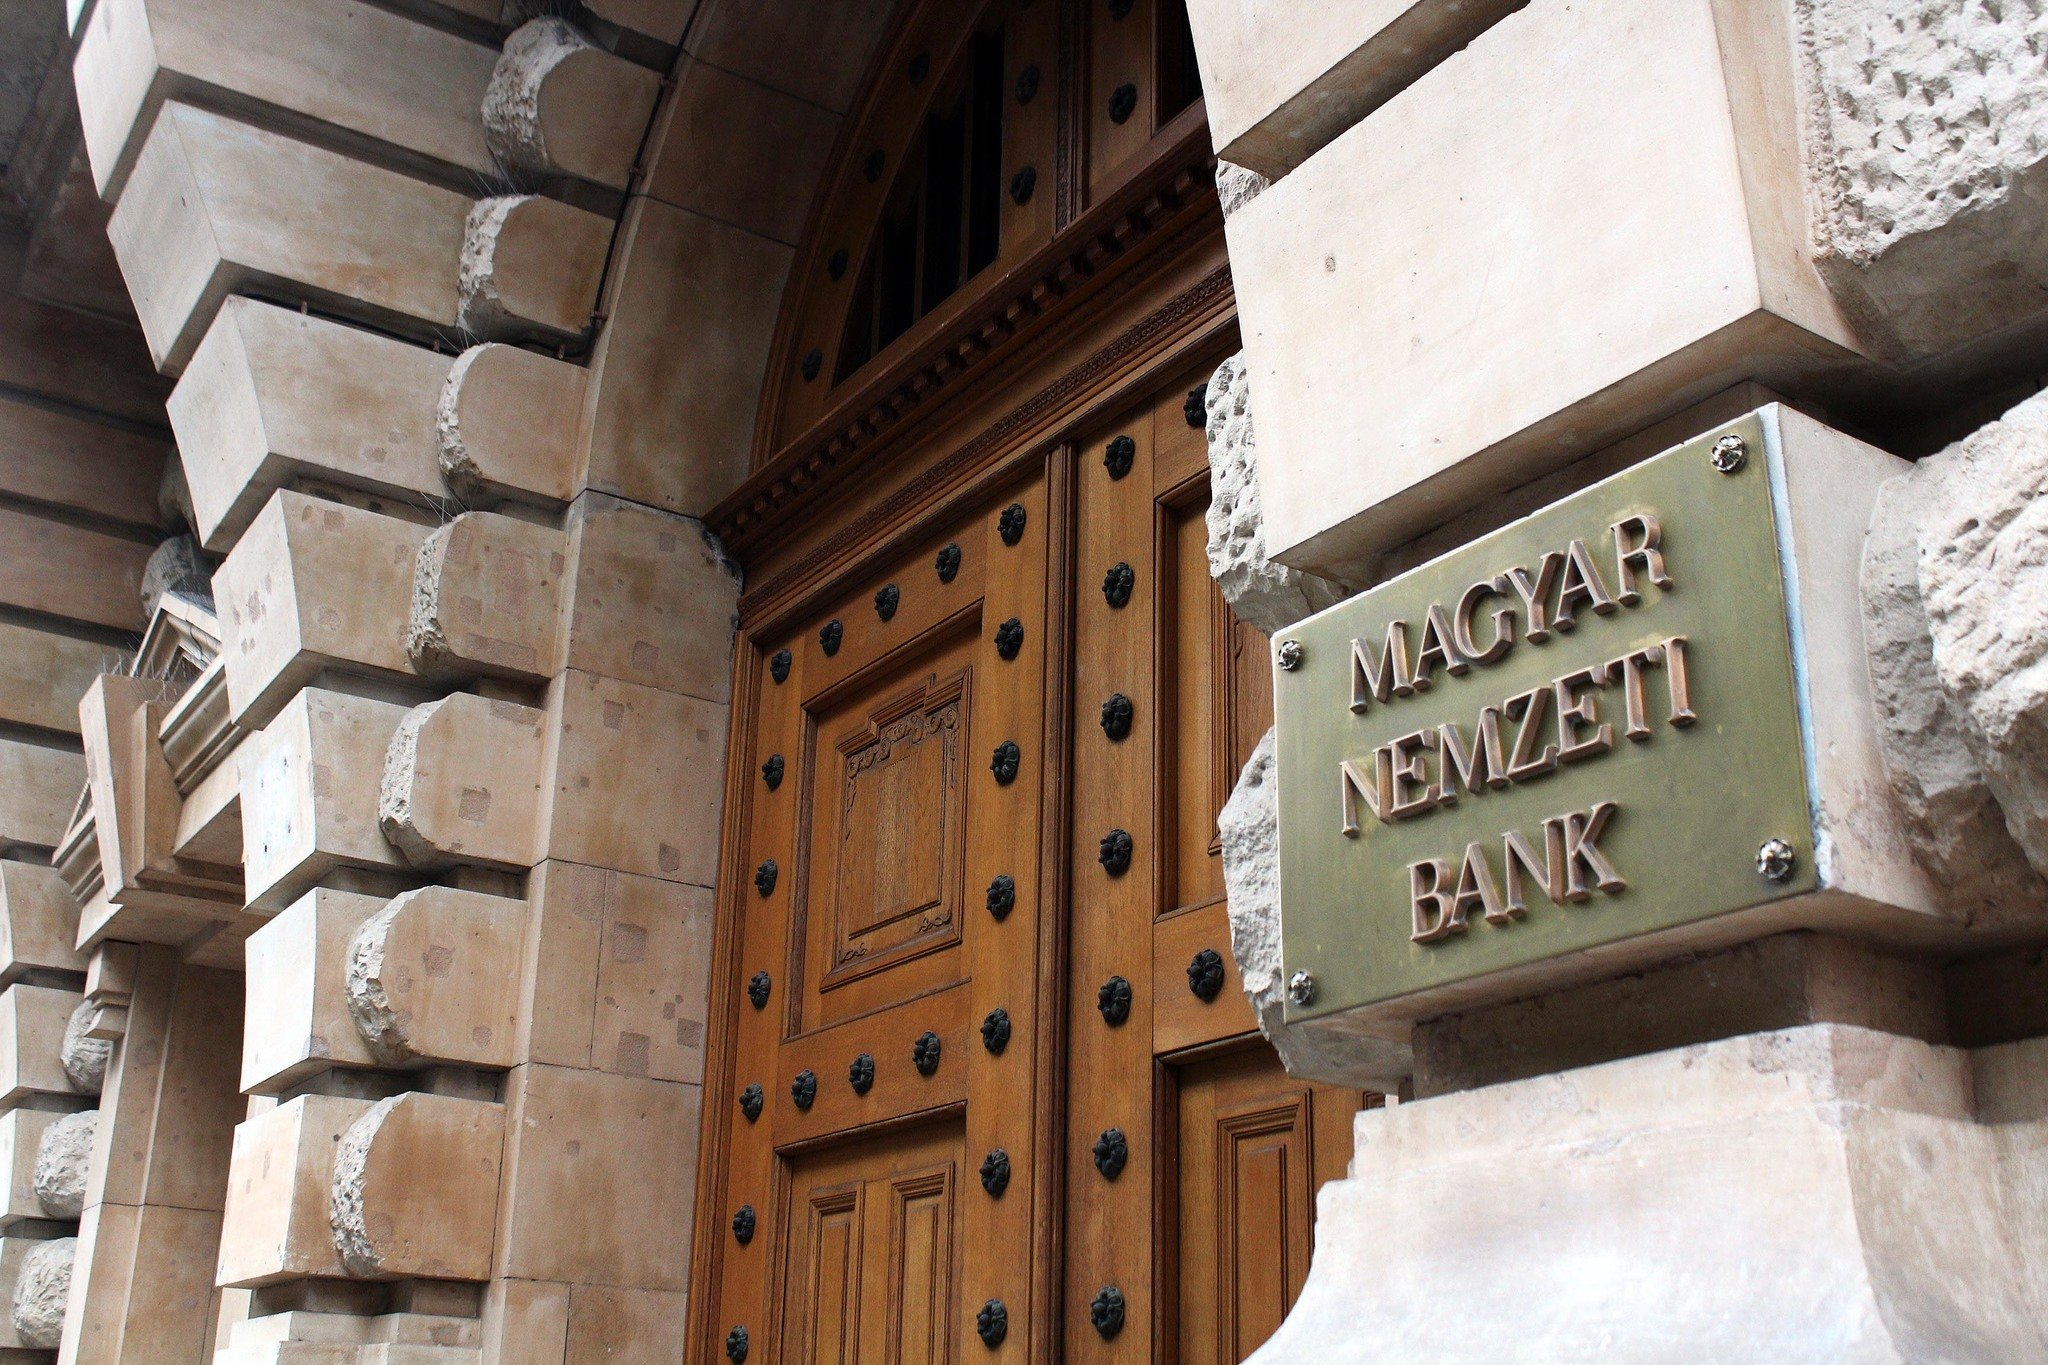 Hungary's central bank mulling ways to cheapen mortgages